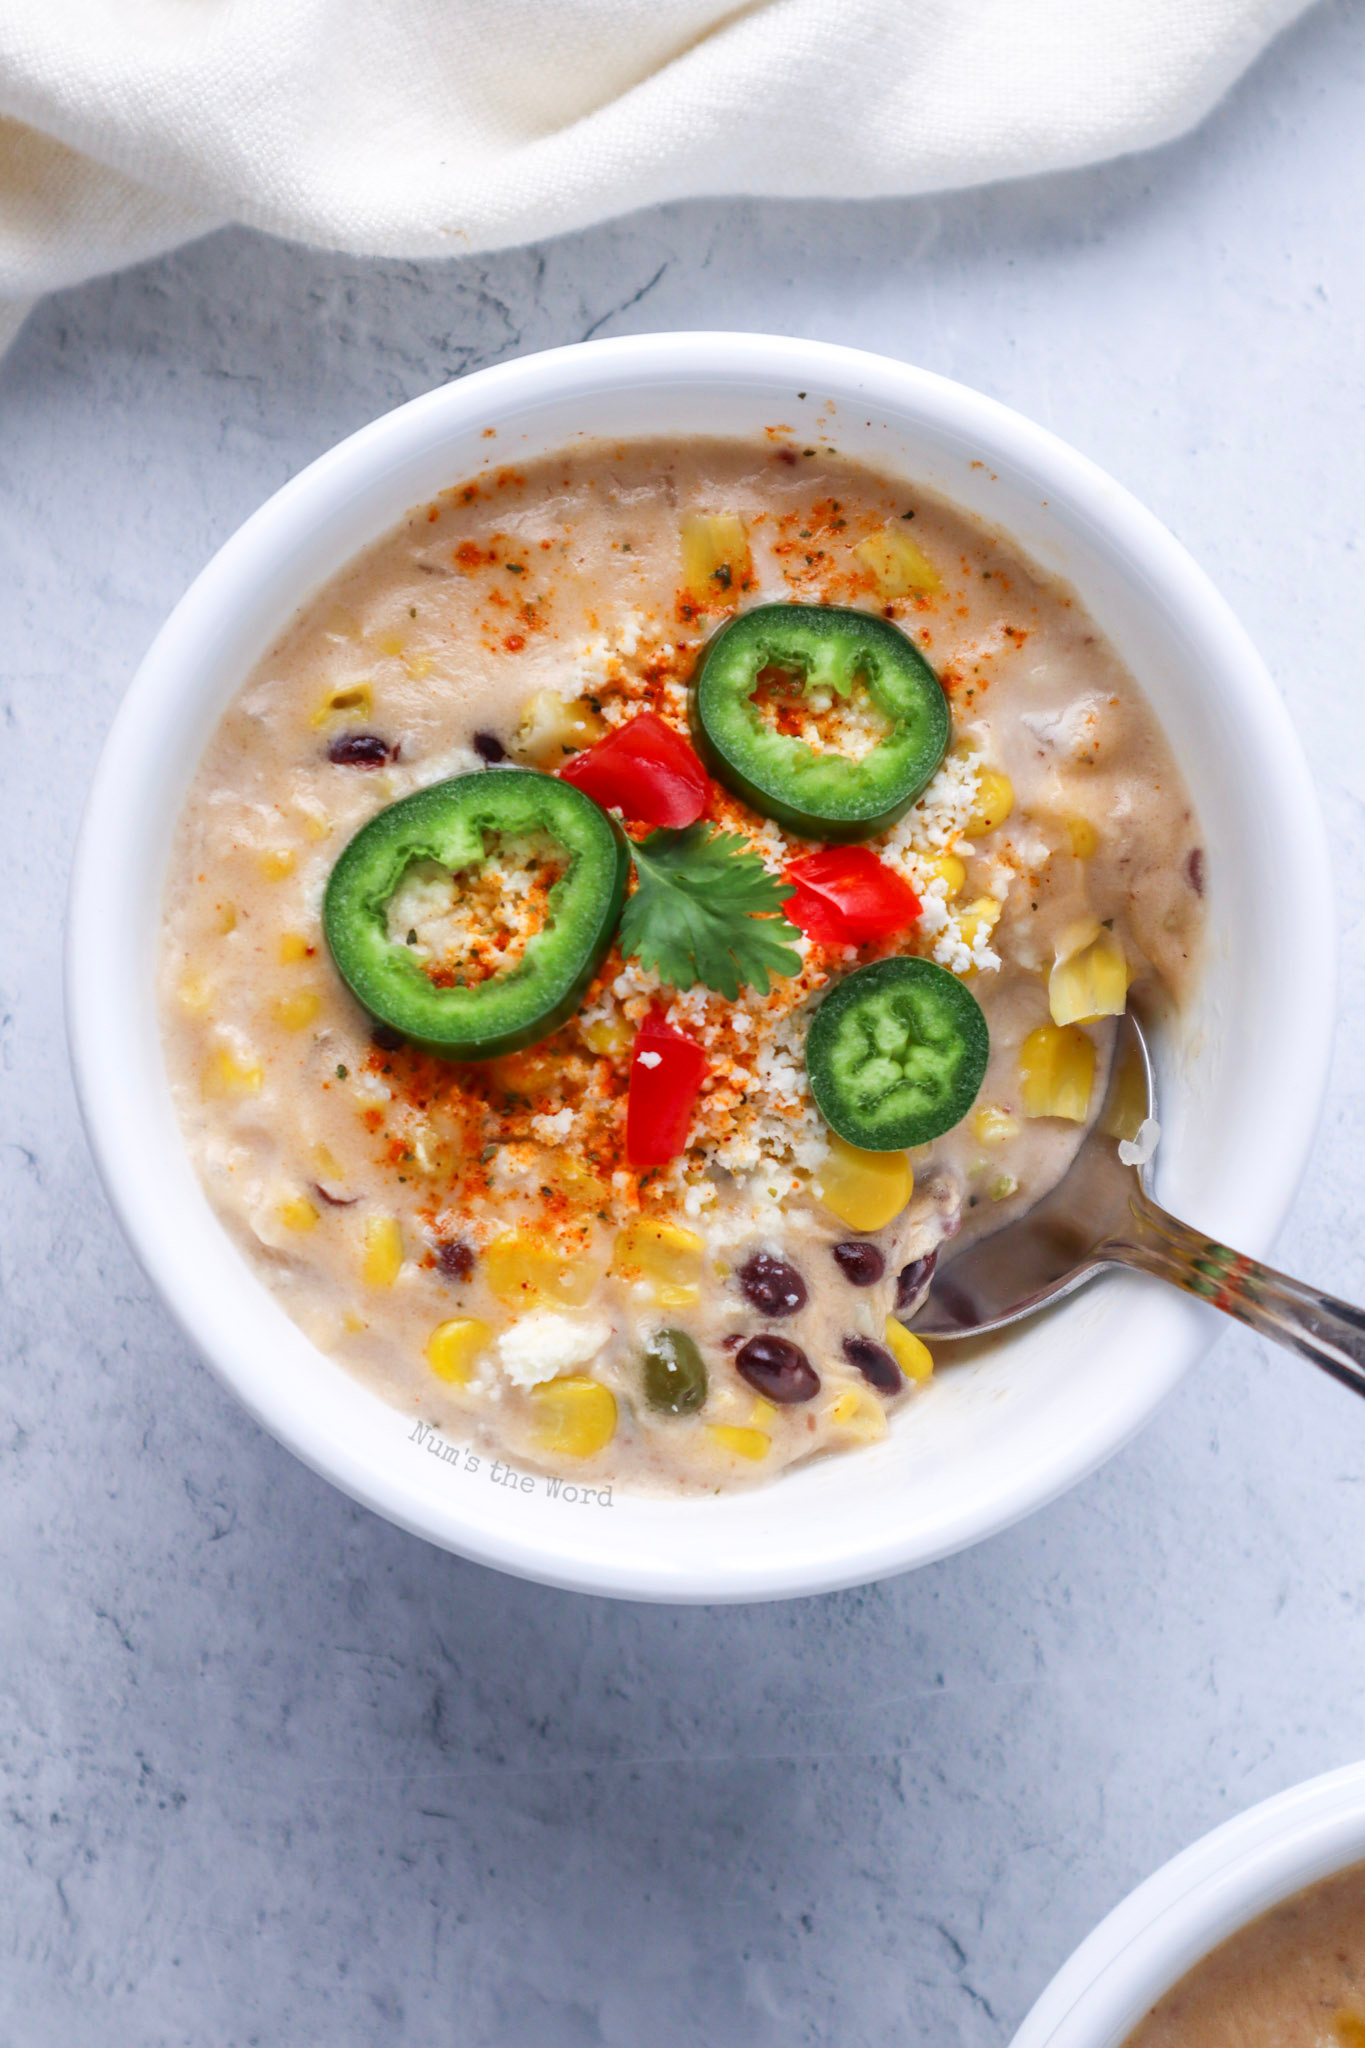 soup in a bowl with toppings of